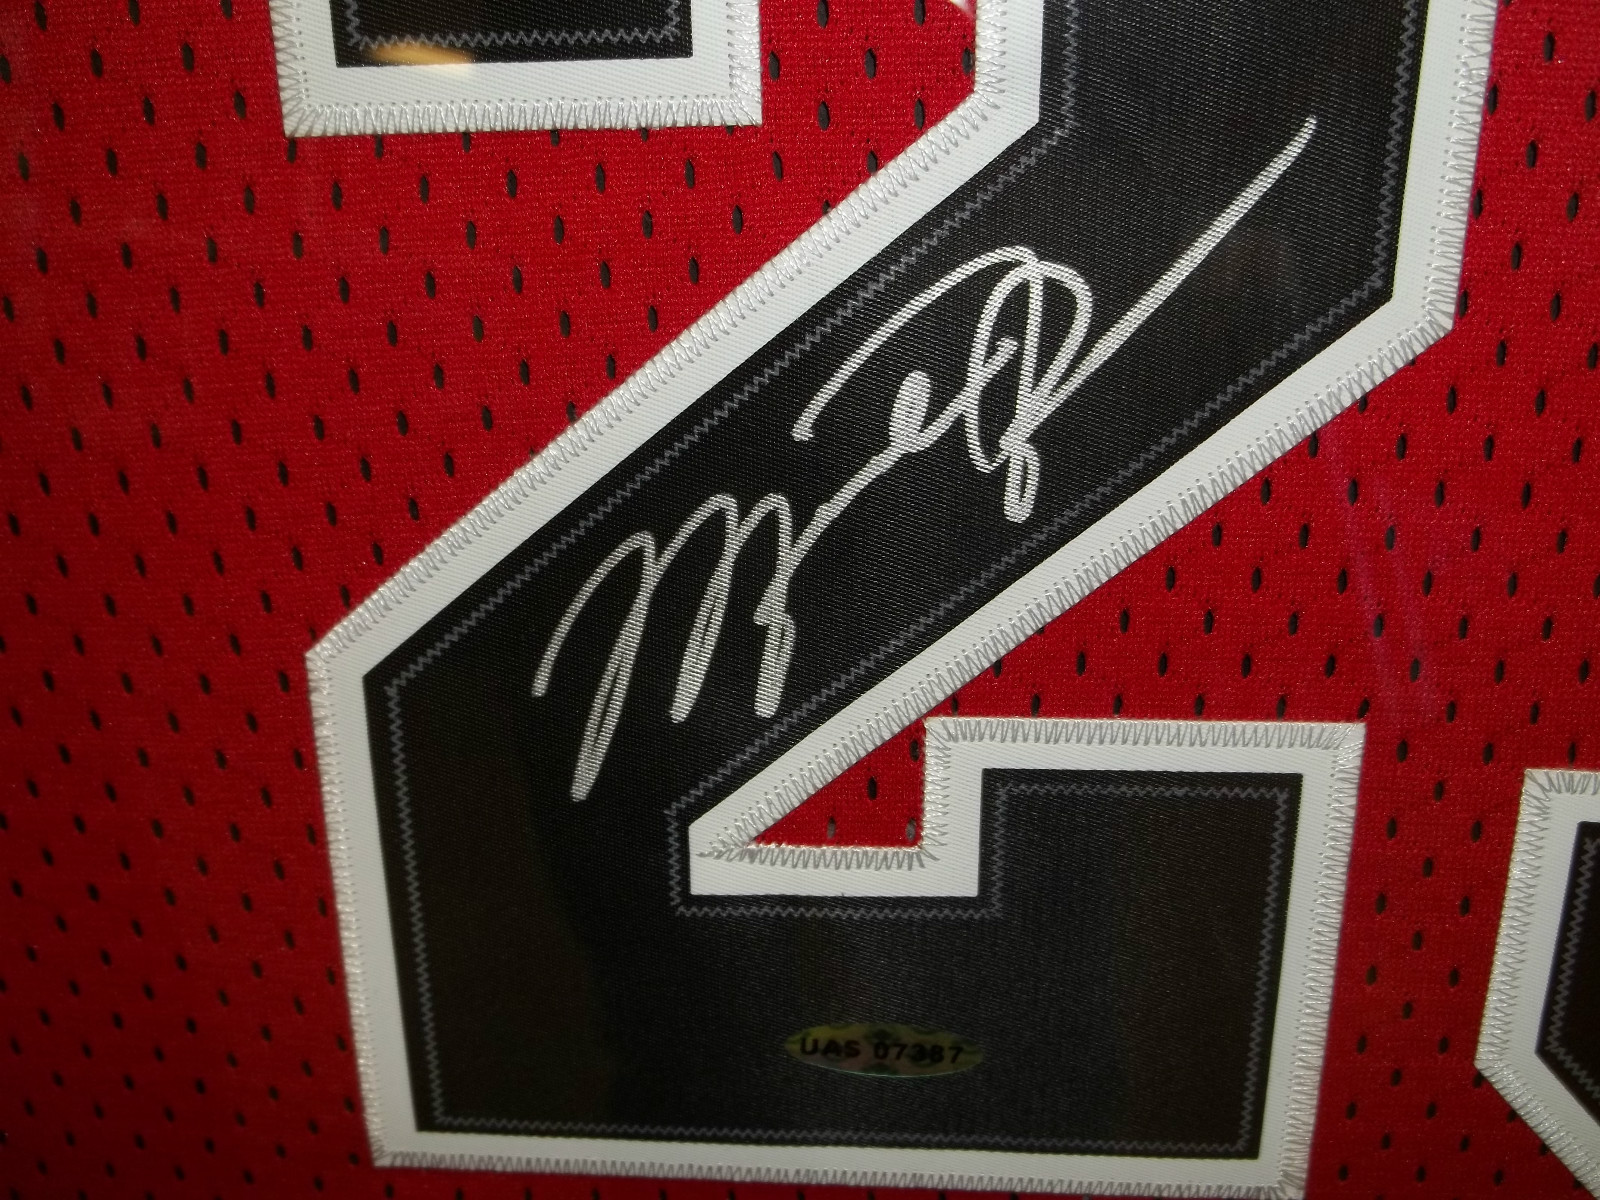 premium selection 0babd f339d Signed Jersey Pricing  Active Listings for Michael Jordan Signed Jerseys